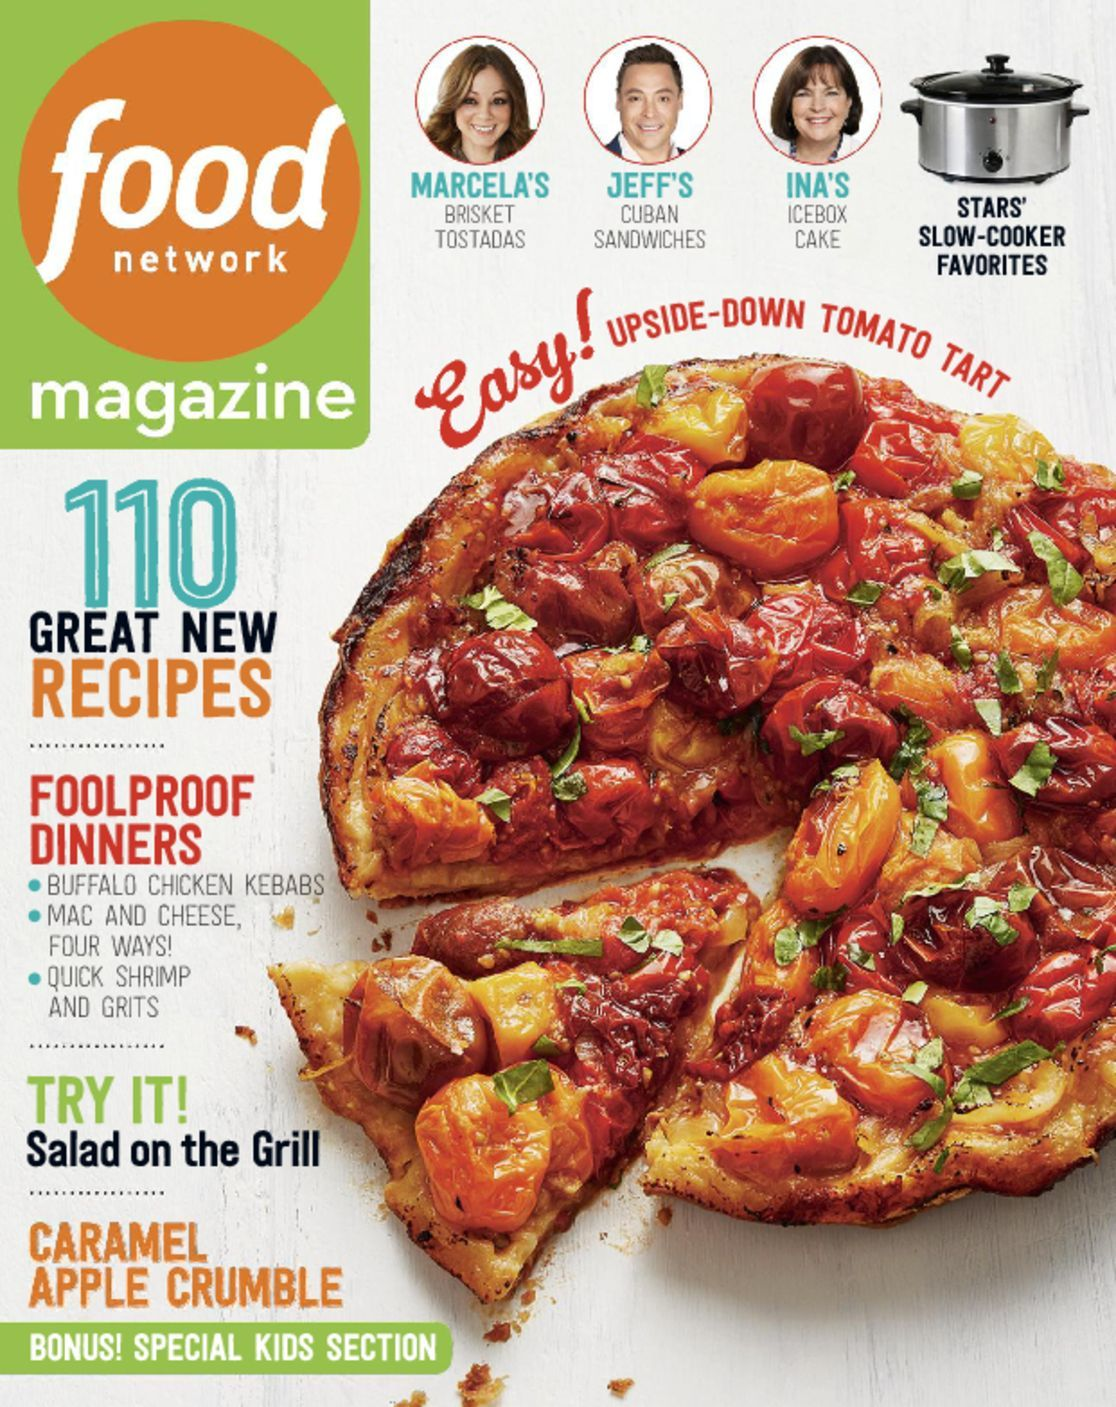 Food Network Magazine Discount Subscriptions